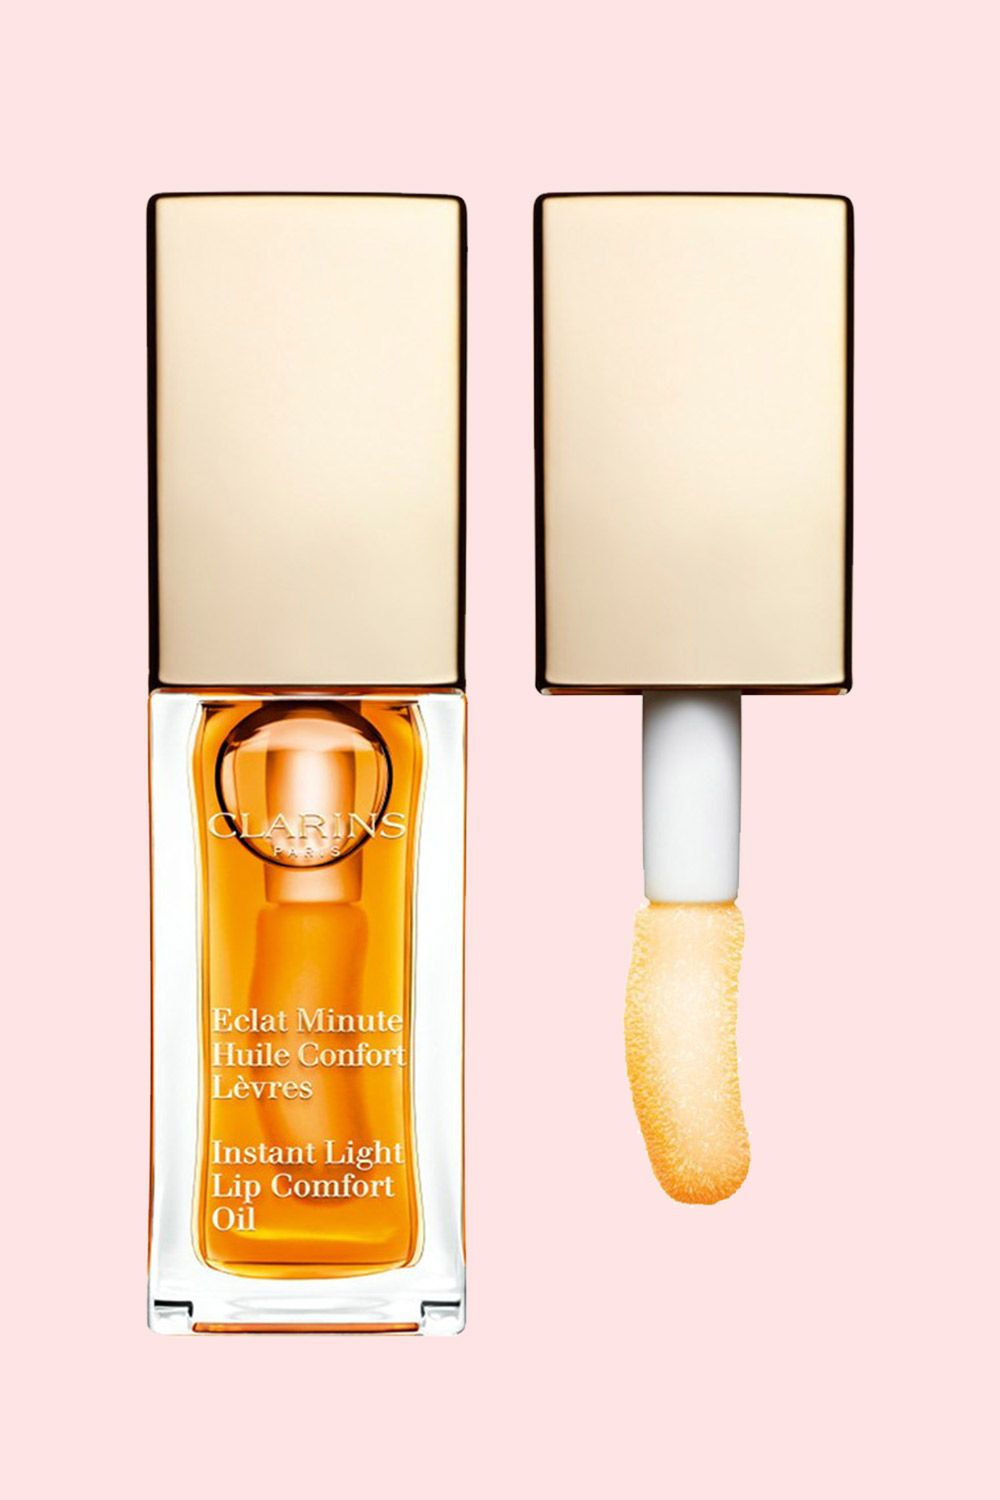 "<p>This gel-like, hint-of-color oil is packed with nourishment by way of mirabelle plum, jojoba, and hazelnut. Oh, and it will make your lips look fuller sans liner!</p><p><strong>Clarins 'Instant Light' Lip Comfort Oil, $25; <a href=""http://www.clarinsusa.com/en/instant-light-lip-comfort-oil/C050303007.html"">clarins.com</a>.</strong></p>"